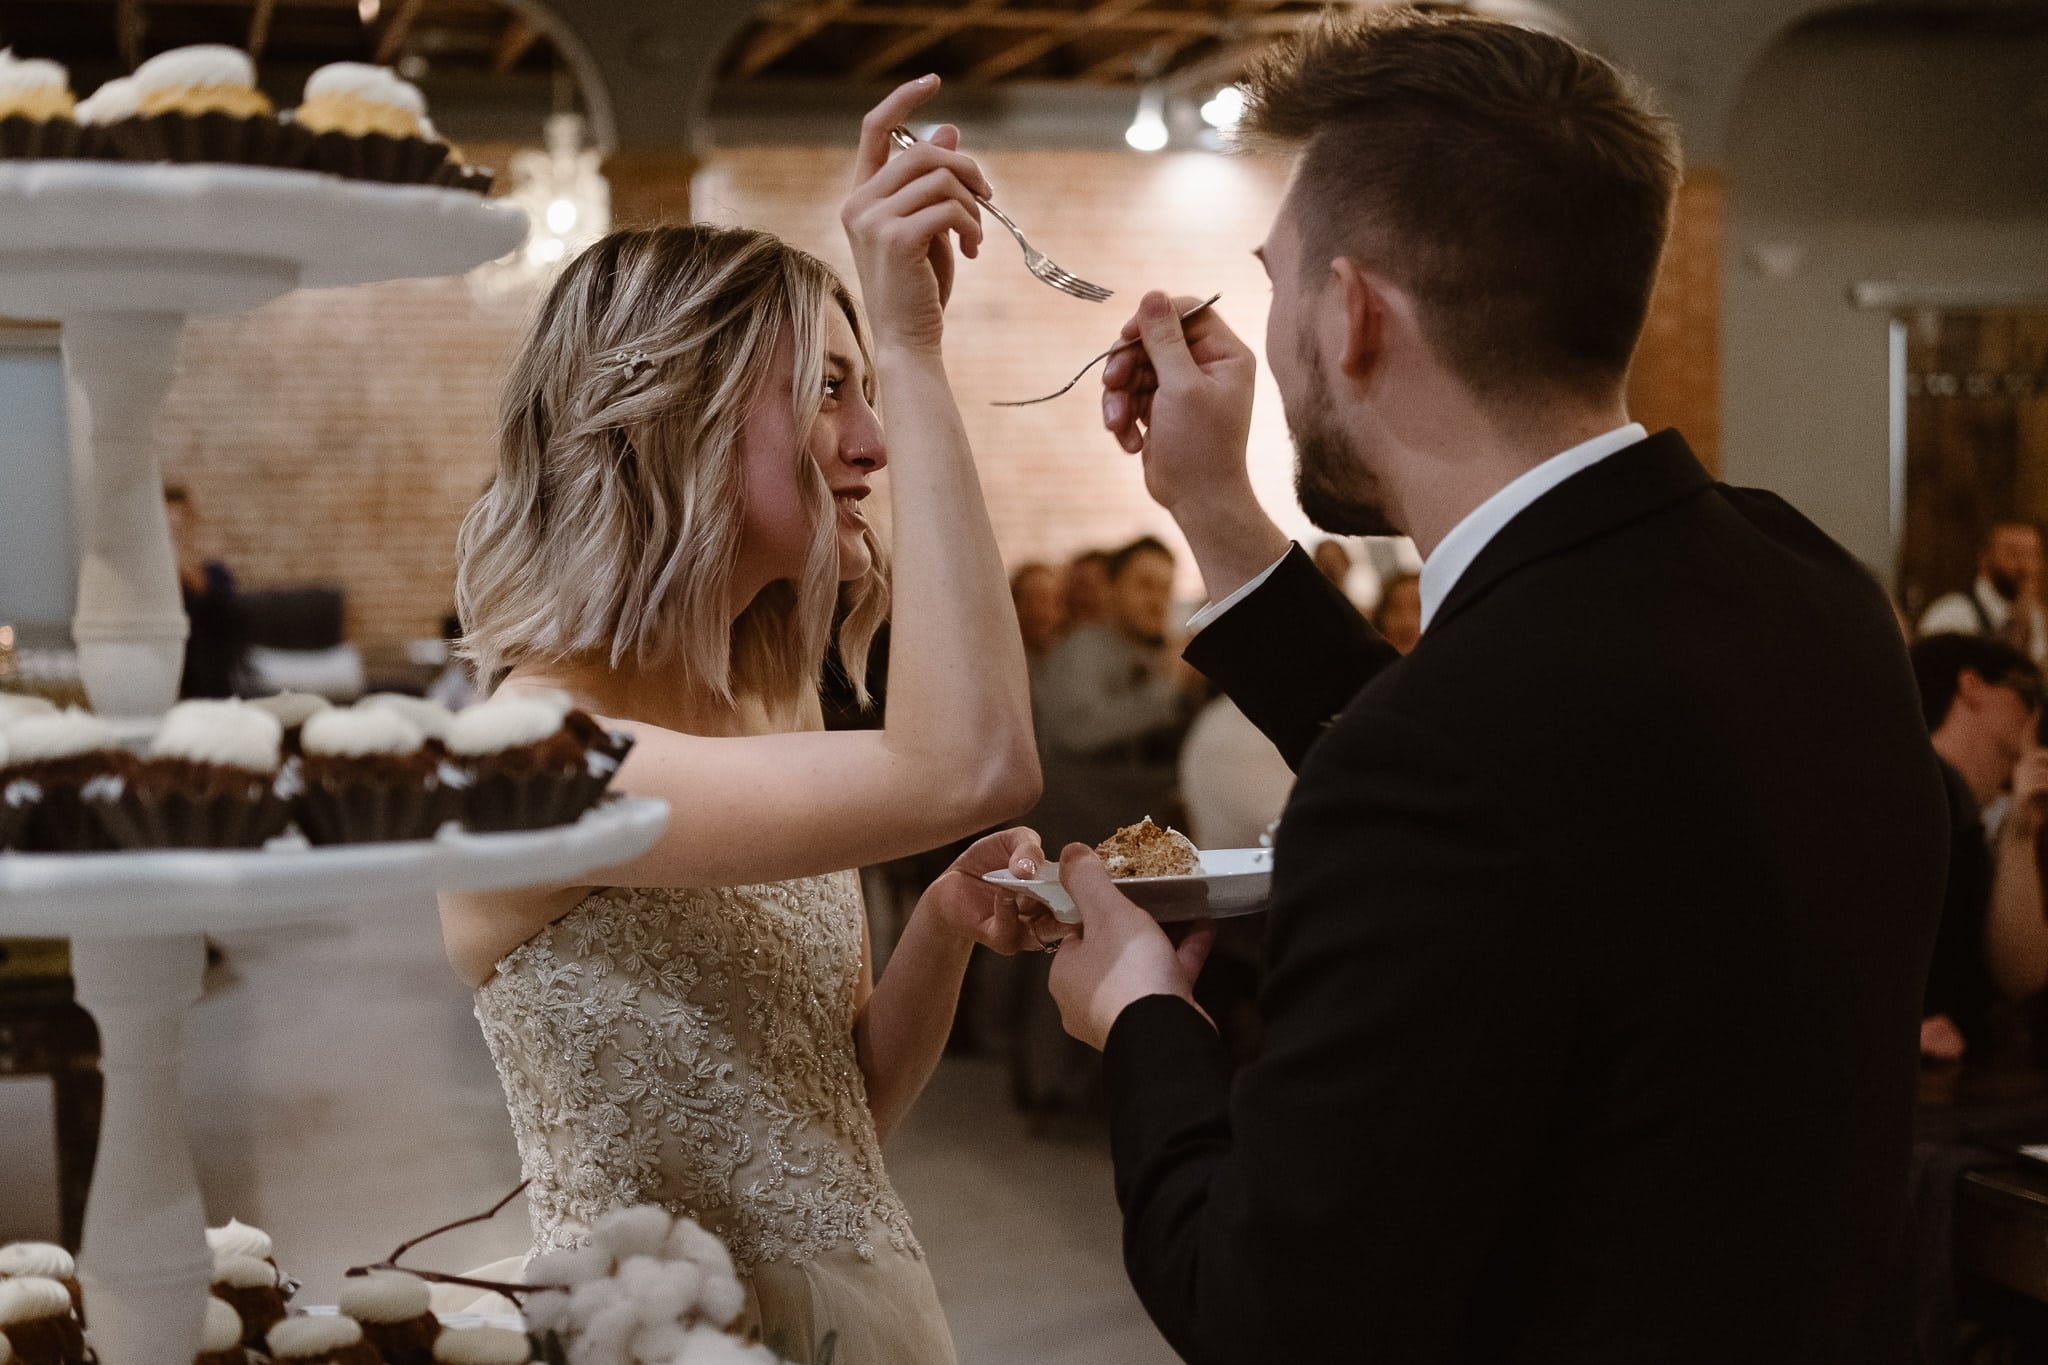 St Vrain Wedding Photographer | Longmont Wedding Photographer | Colorado Winter Wedding Photographer, Colorado industrial chic wedding ceremony, bride and groom cutting bundt cake